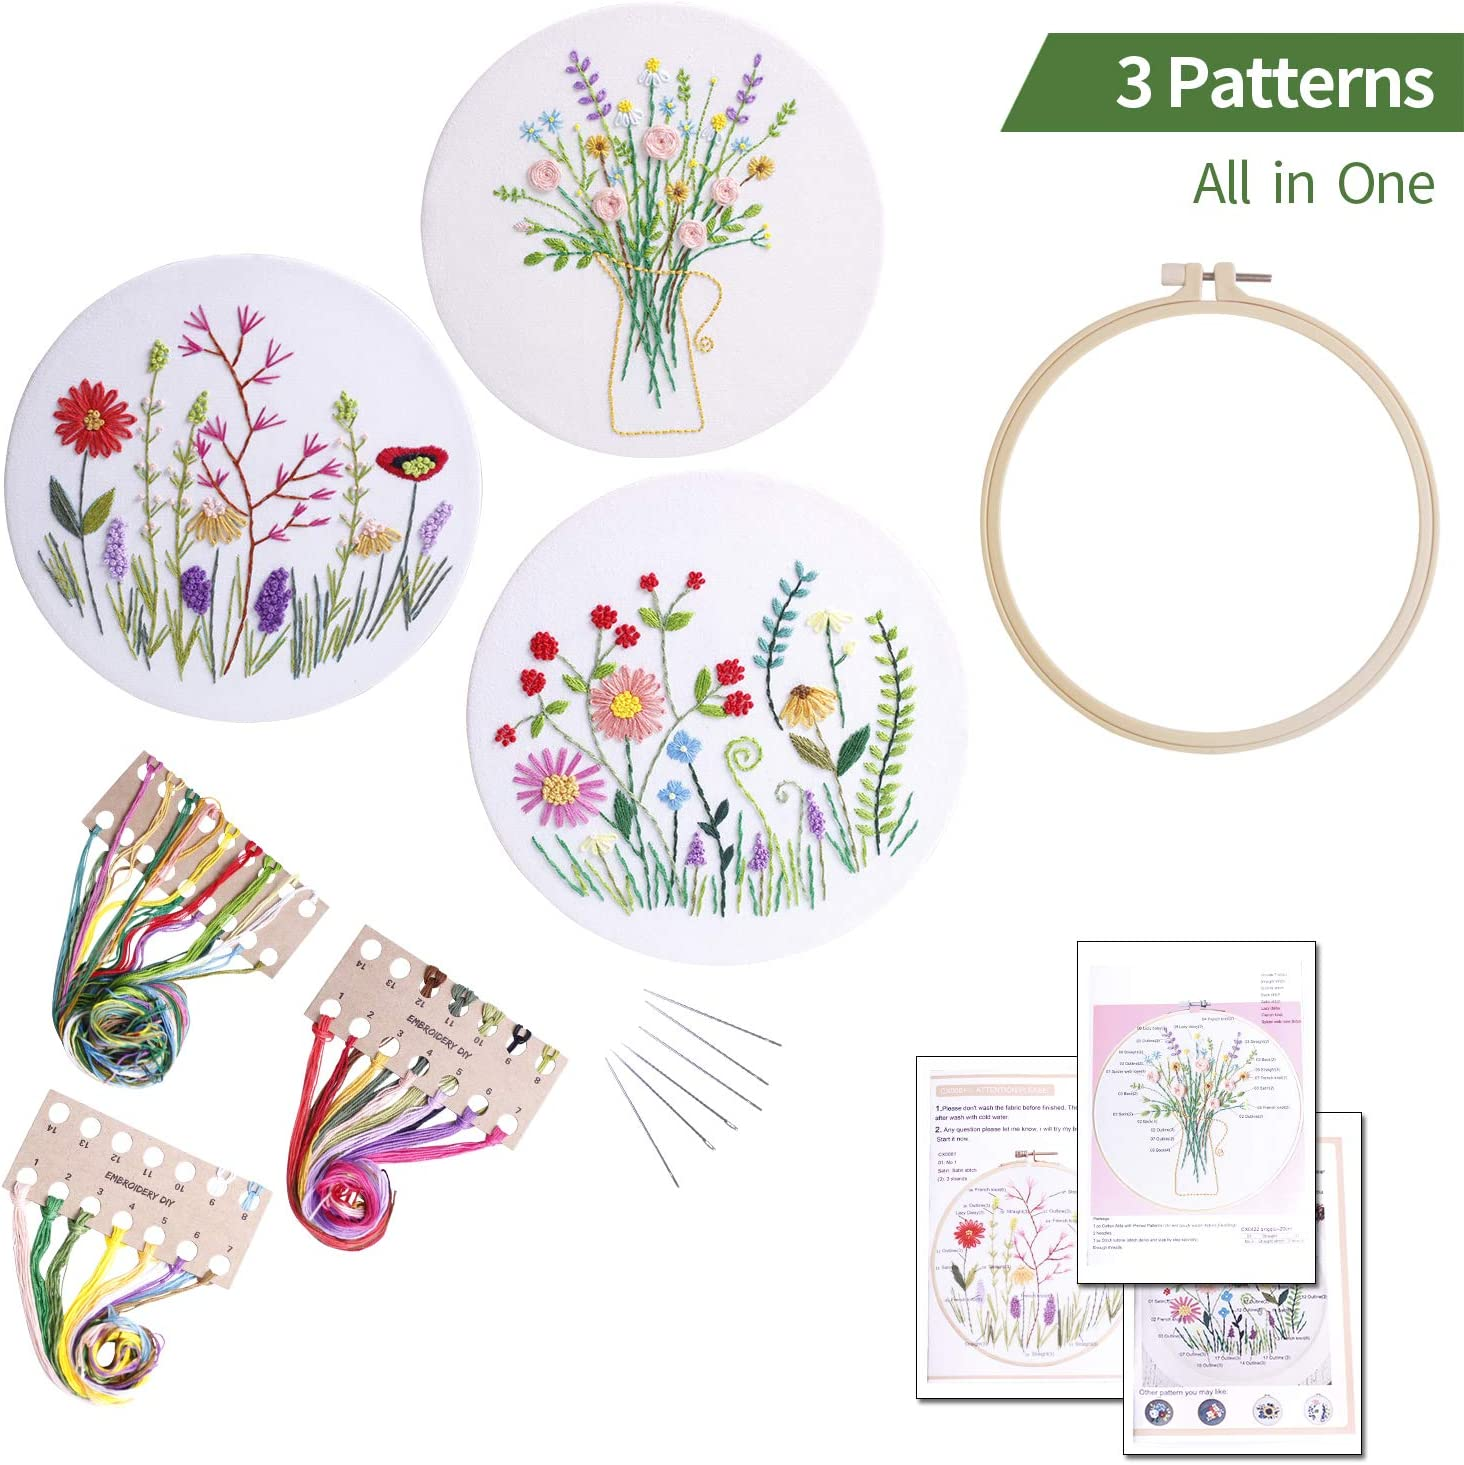 3sets Full range embroidery kits for beginners stamped embroidery kit includes embroidery cloth with pattern embroidery hoop instruction color embroidery floss threads set and needles Kit4